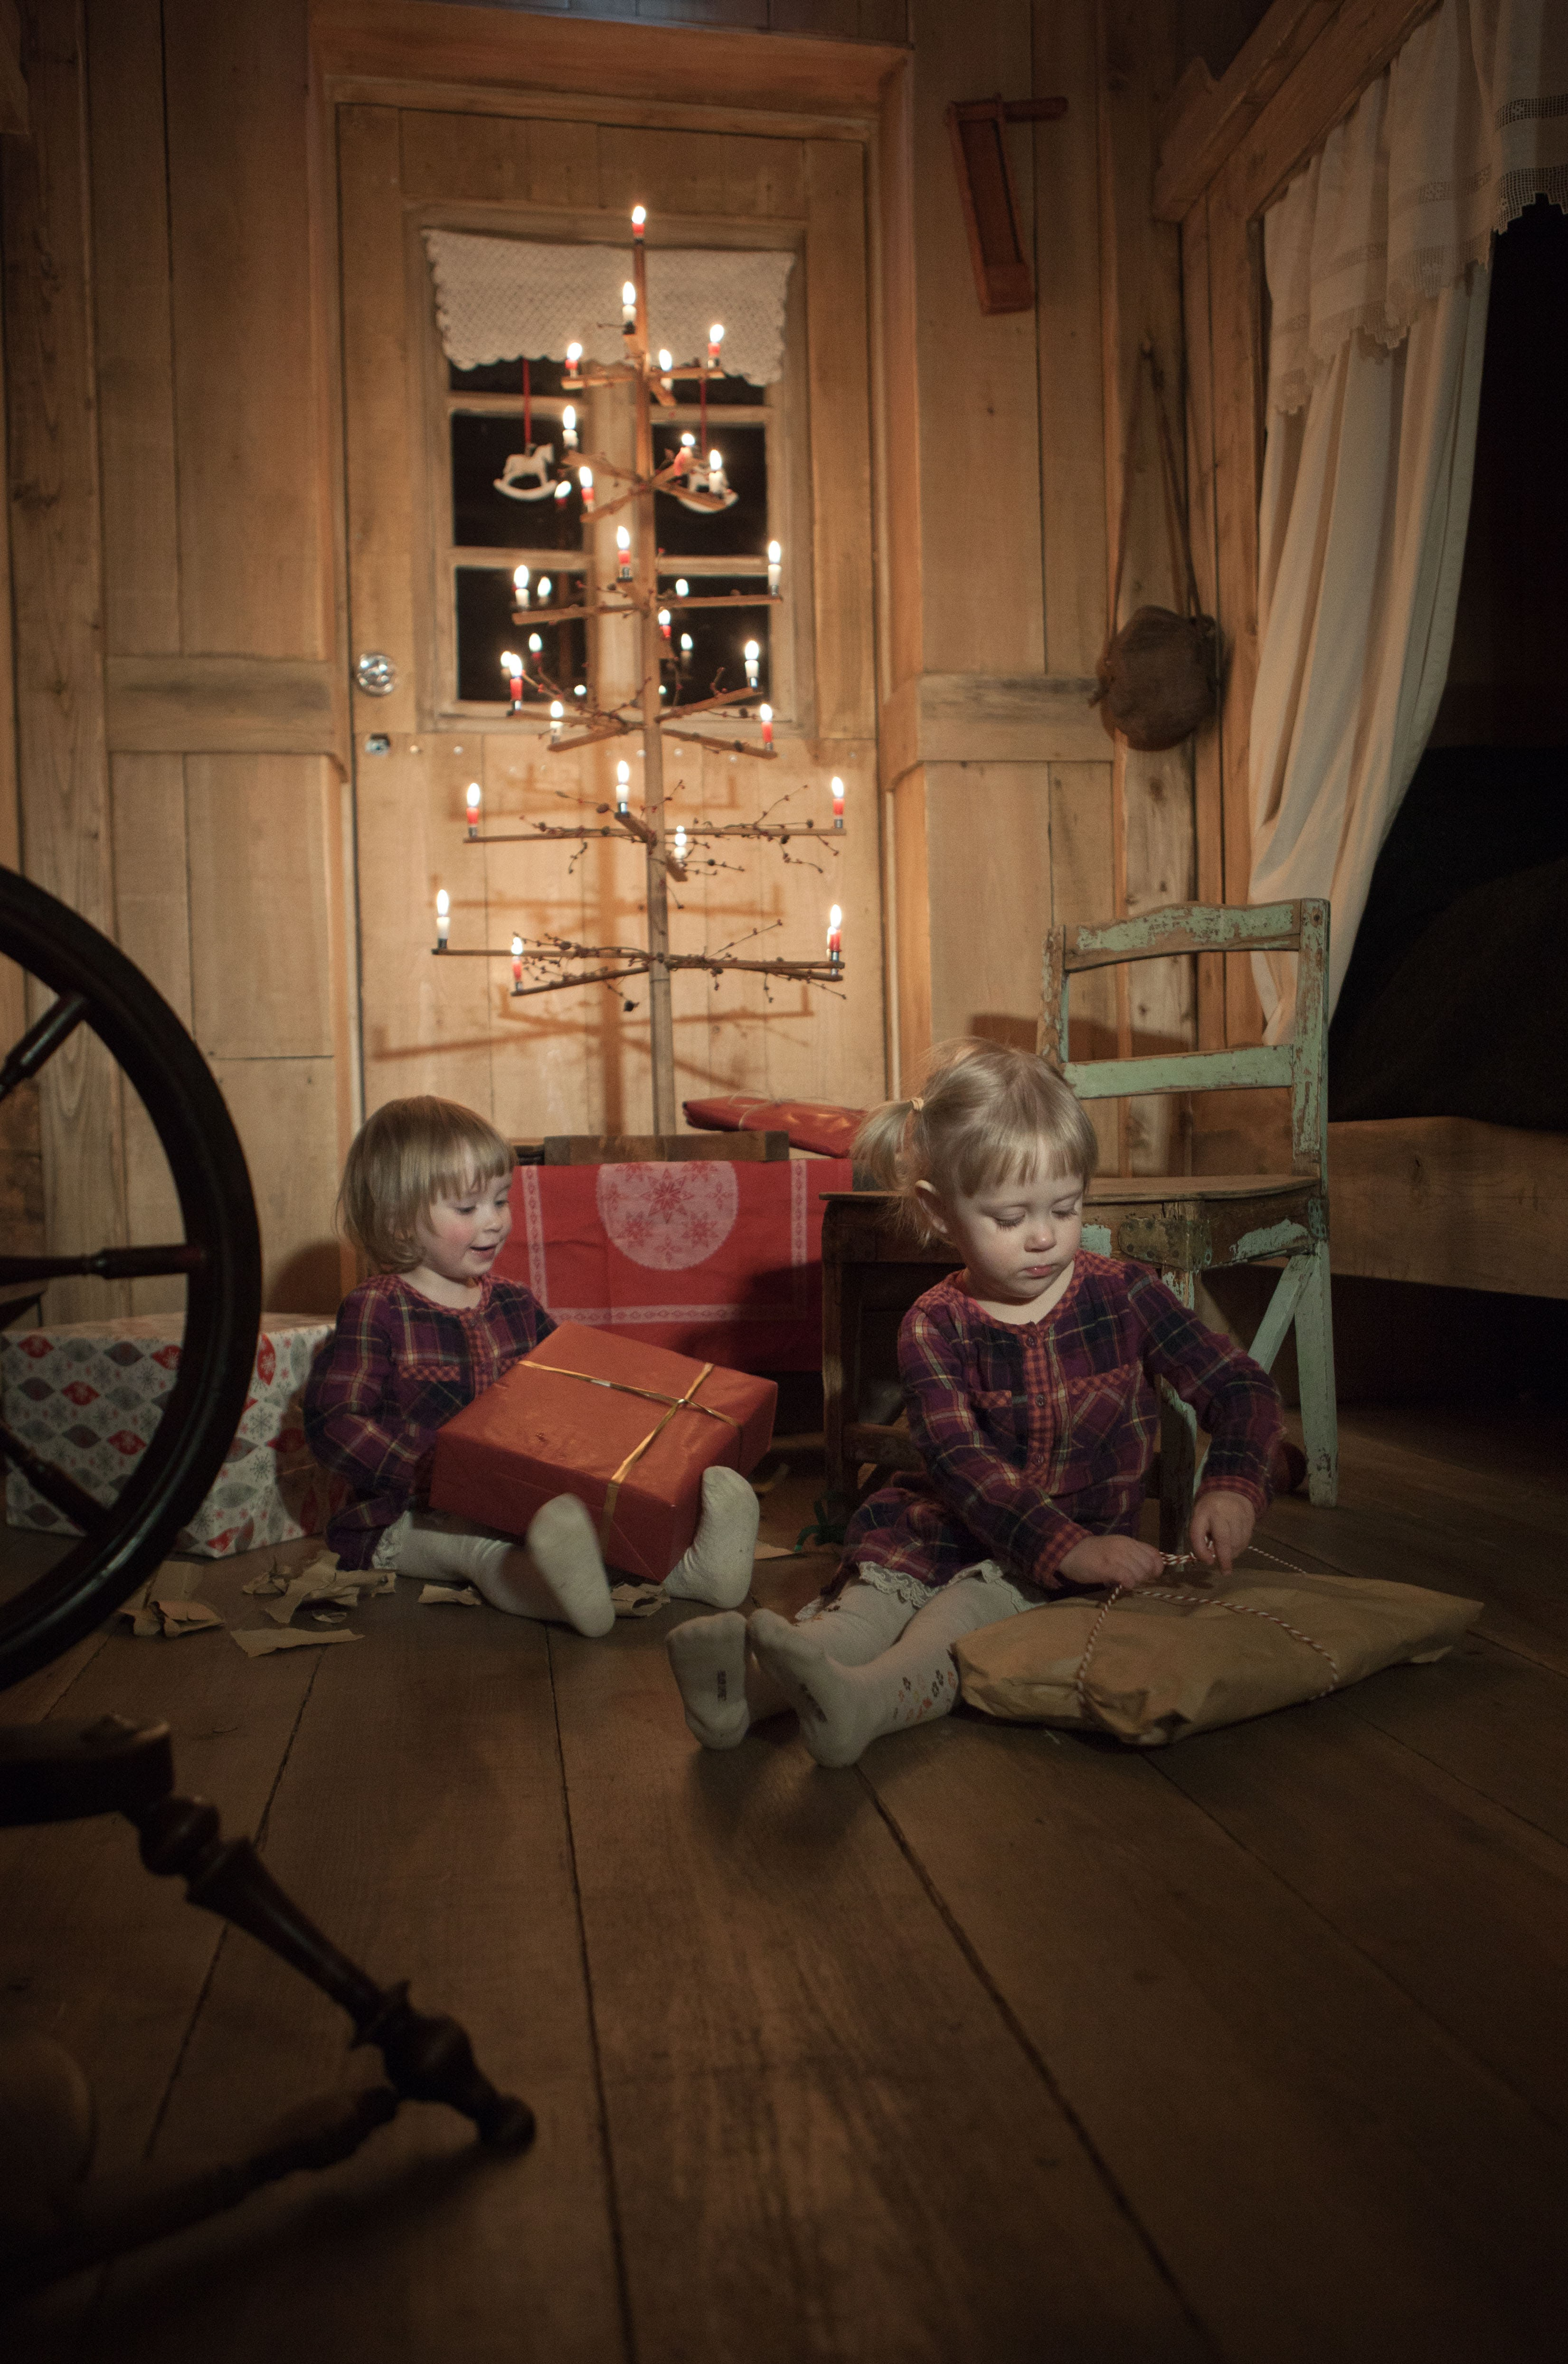 Two little girls open presents by an old styled 'hanger tree', as were common in Iceland in the 19th and early 20th century.